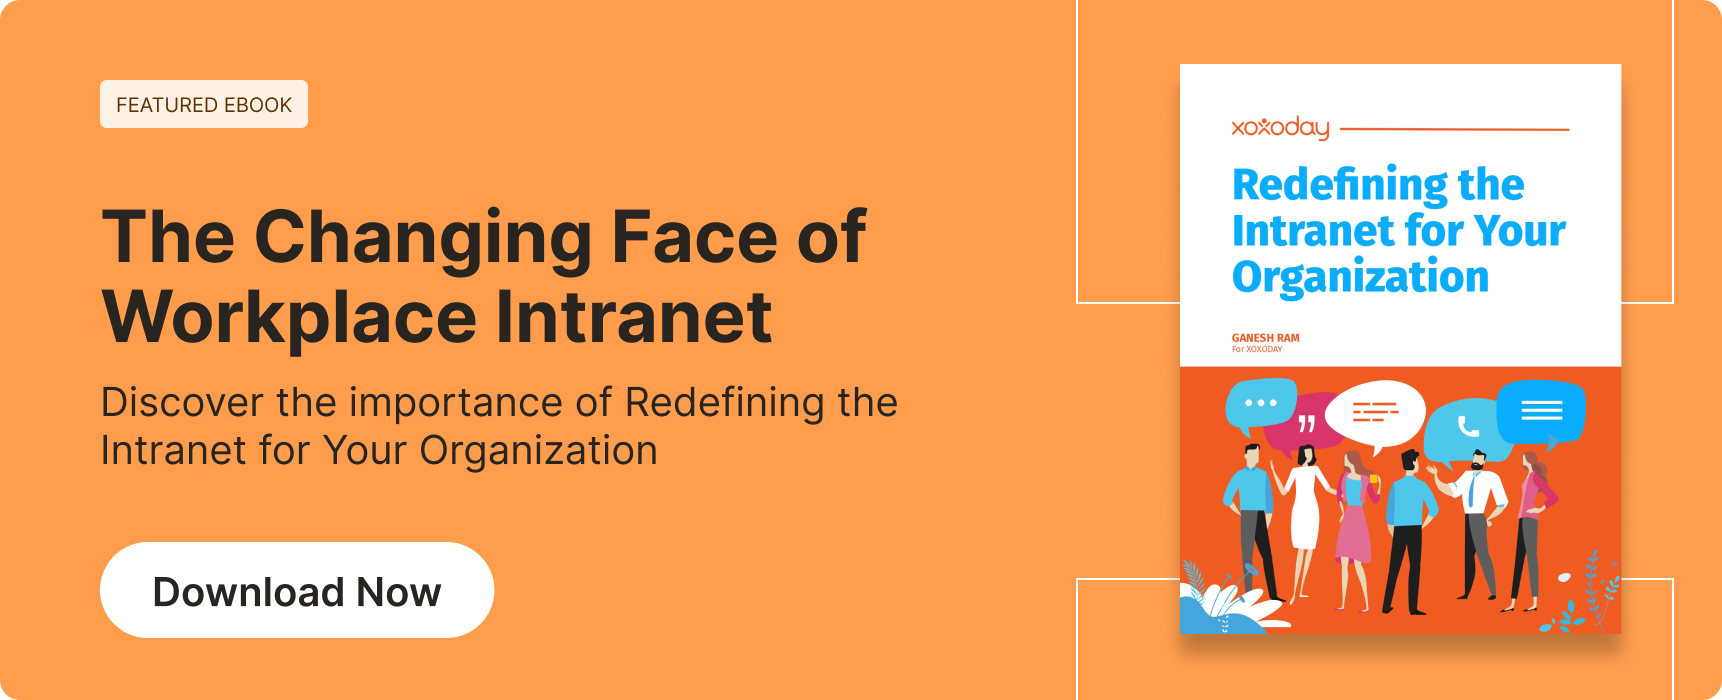 Redefining the Intranet for Your Organization